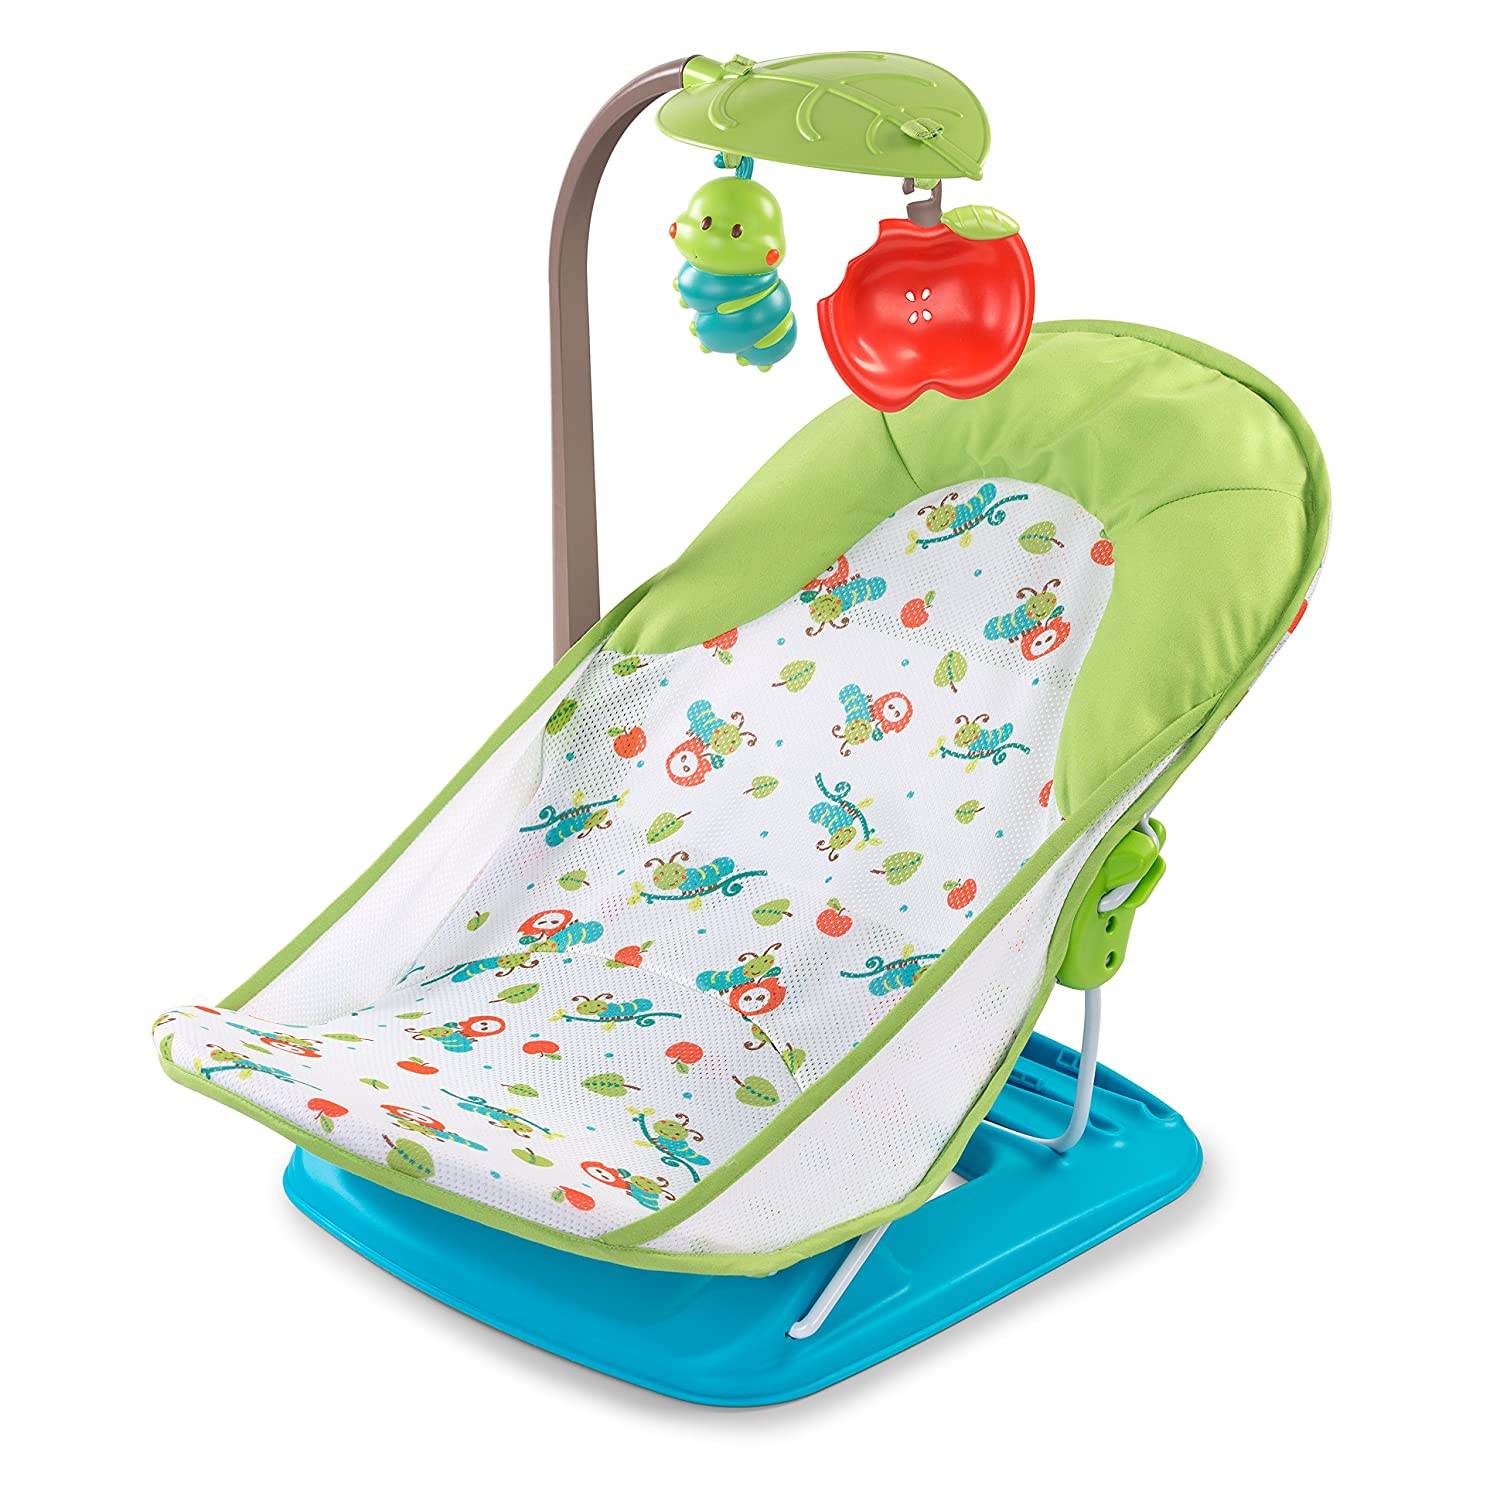 Bouncer Baby Seat Infant Vibrating Chair Rocker Toddler